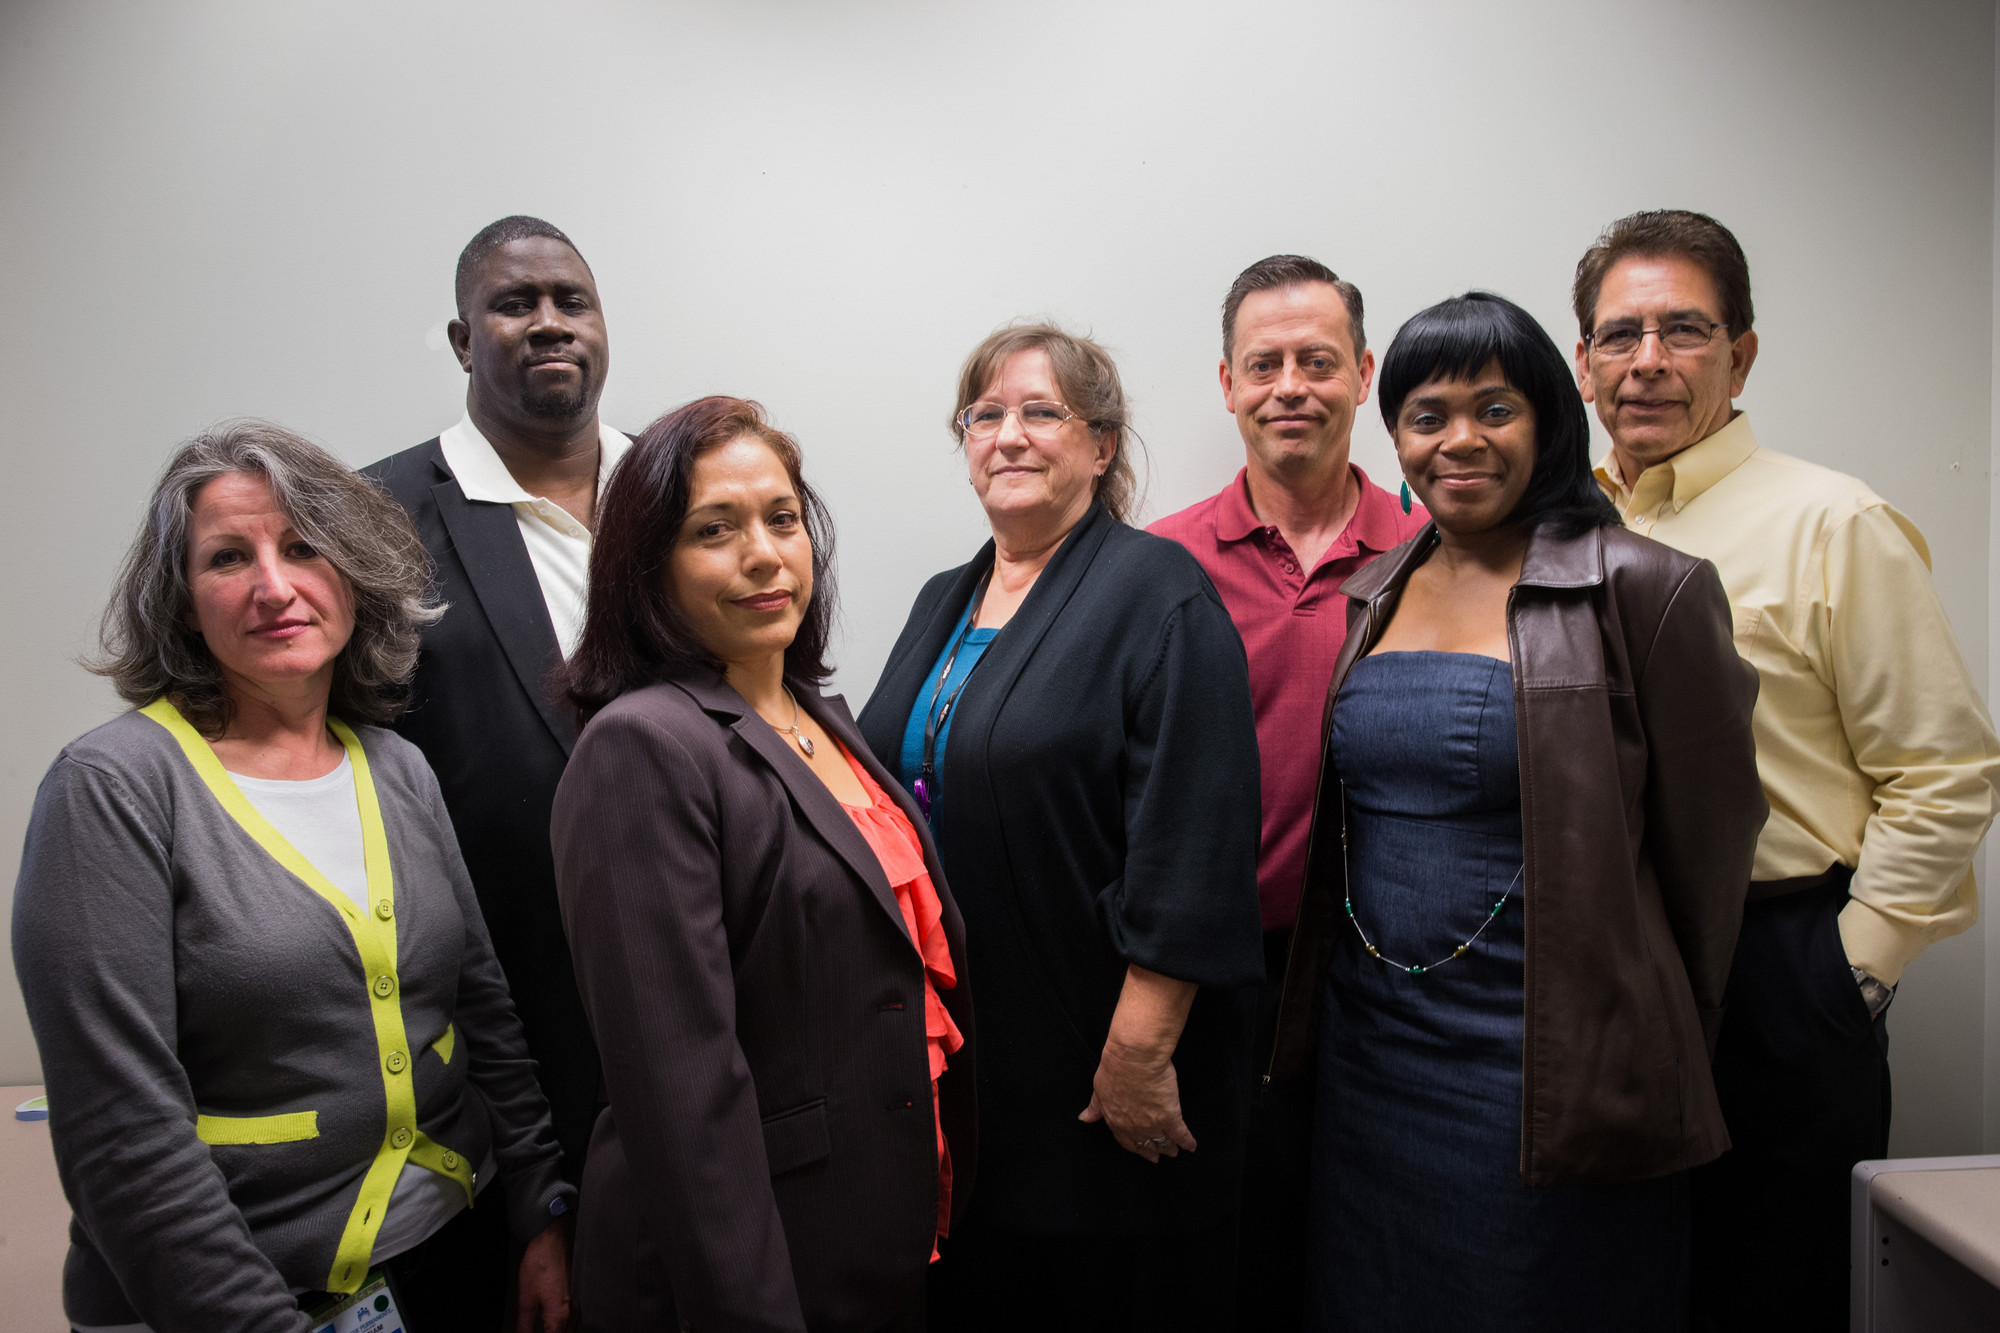 Charitable Health Coverage. L-R: Bilingual Enrollment Processor Miriam Garcia, OPEIU LU 29; Enrollment Processor/Union Steward Carl Artis, OPEIU LU 29; Enrollment Processor Arsenia Alonso, OPEIU LU 29; Systems Manager Susan Davis, Management; Systems Administrator William Bilbrey, Management; Enrollment Processor Sharlene Jone, OPEIU LU 29; National Operations Manager Maurice Rosas, Management